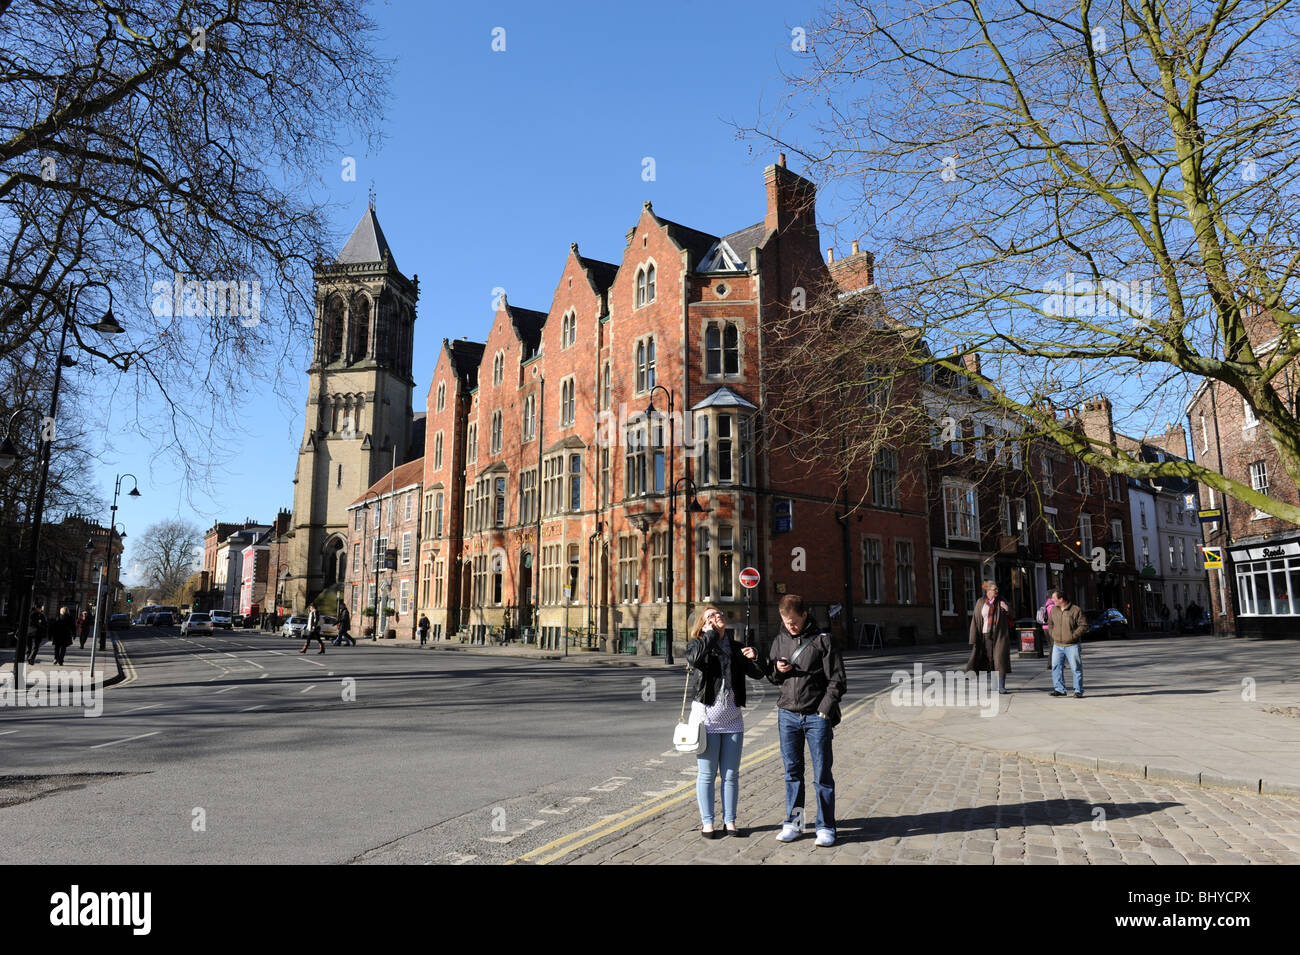 The Dean Court Hotel in City of York in North Yorkshire England Uk - Stock Image